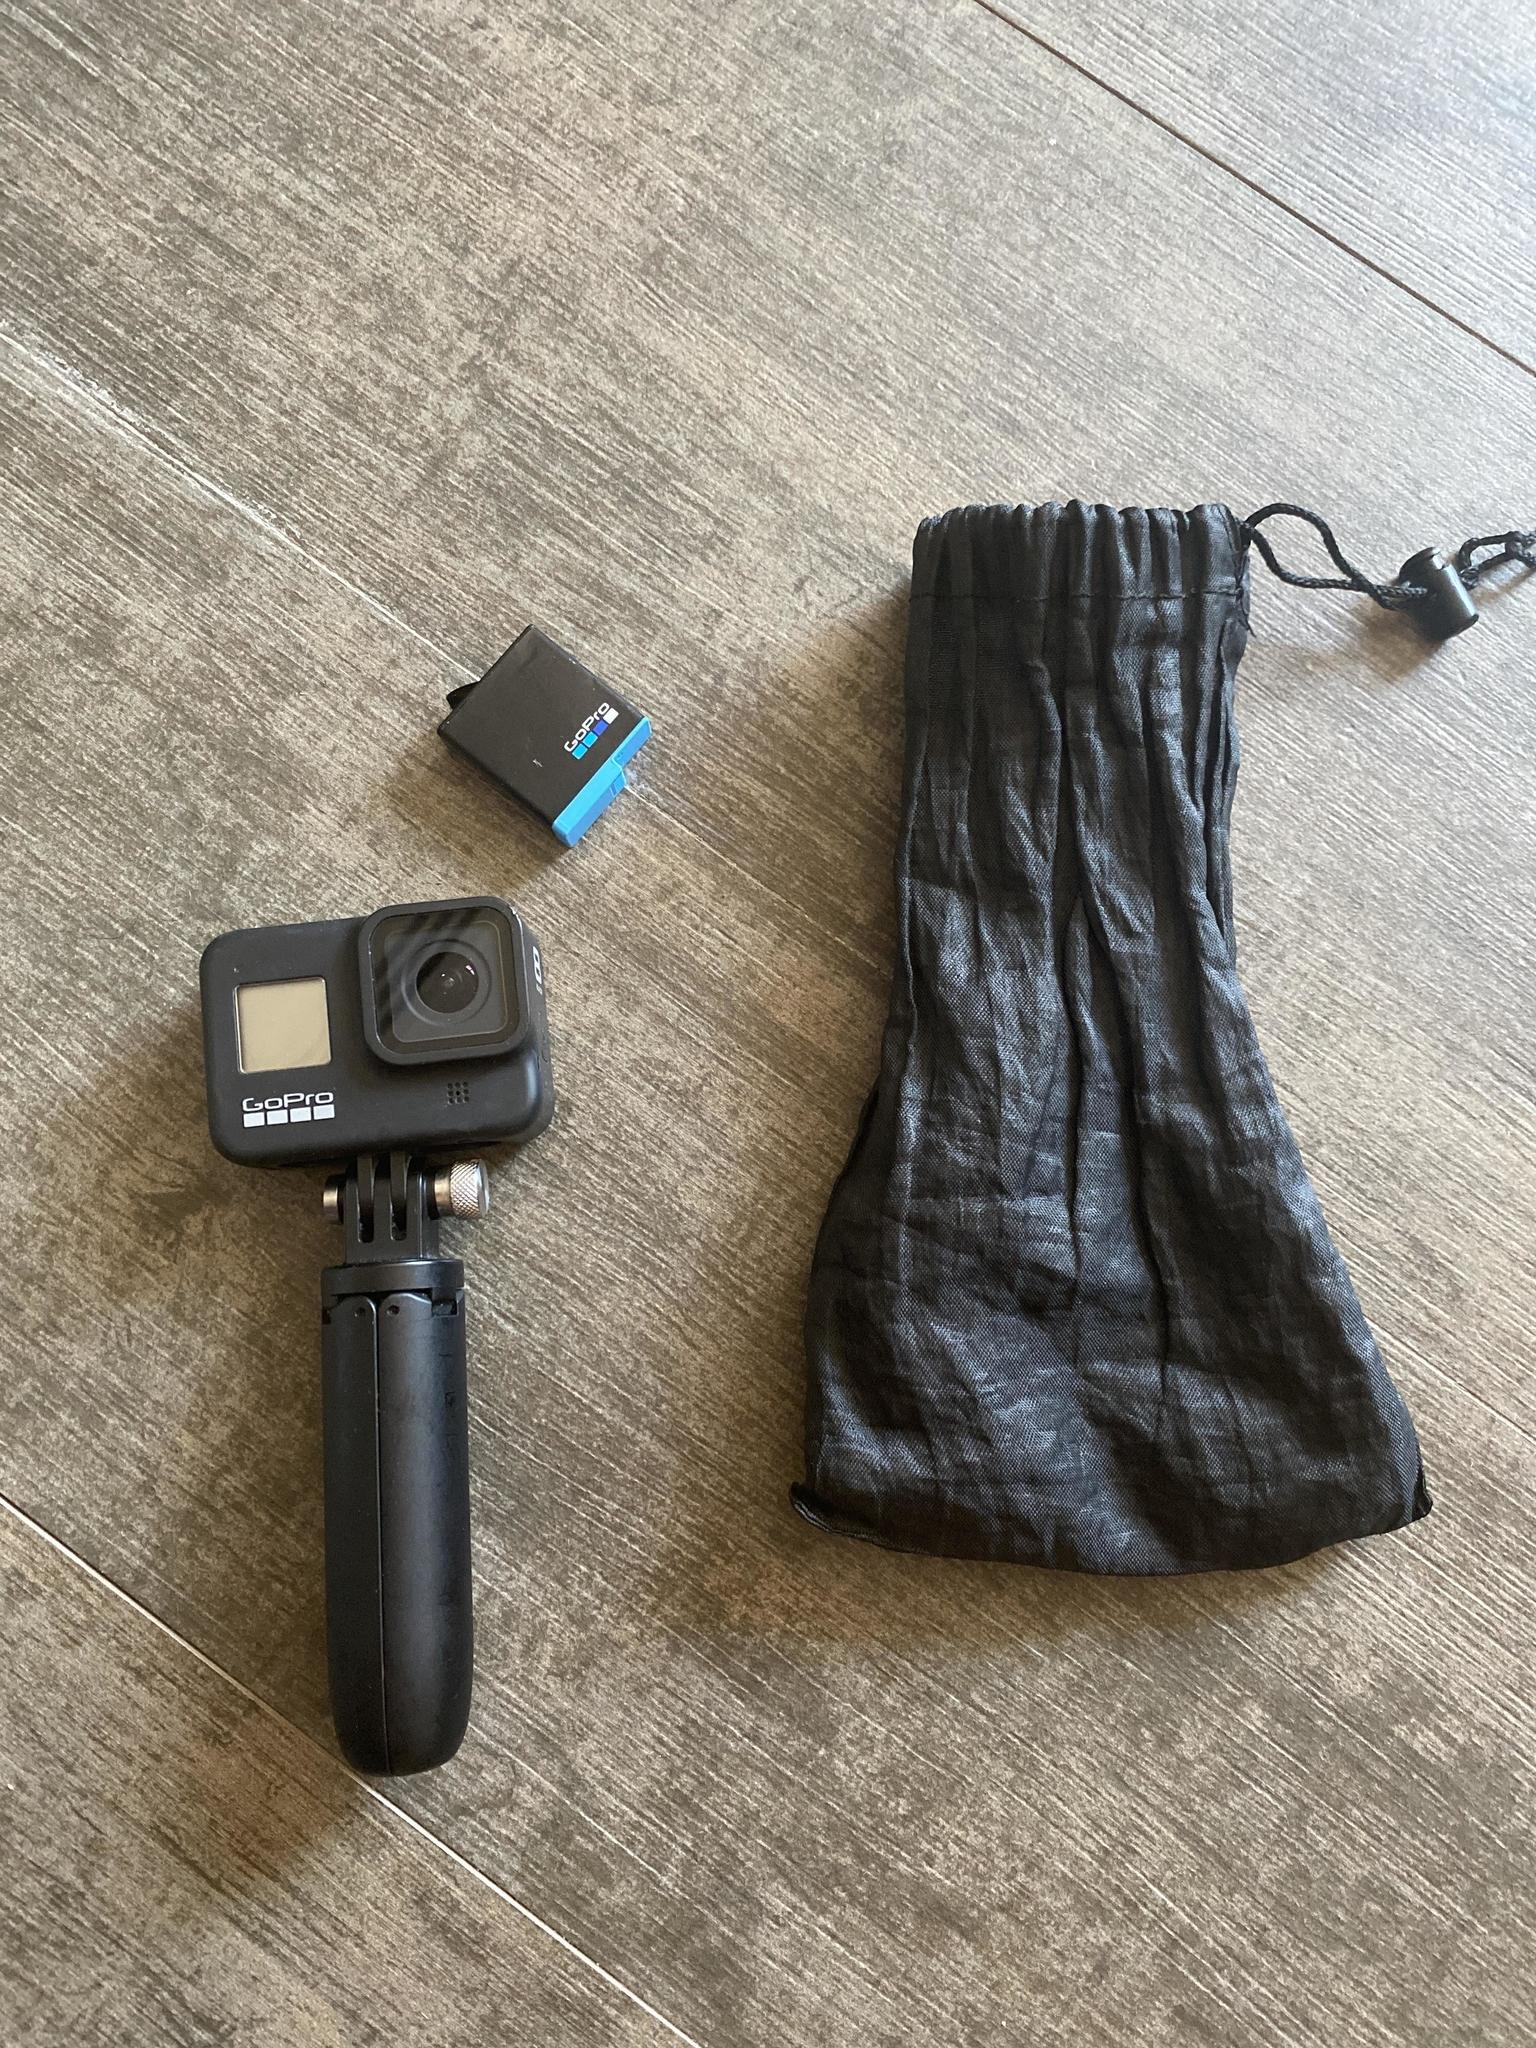 Gopro 8 black and memory card sandisk 128gb!!!! An